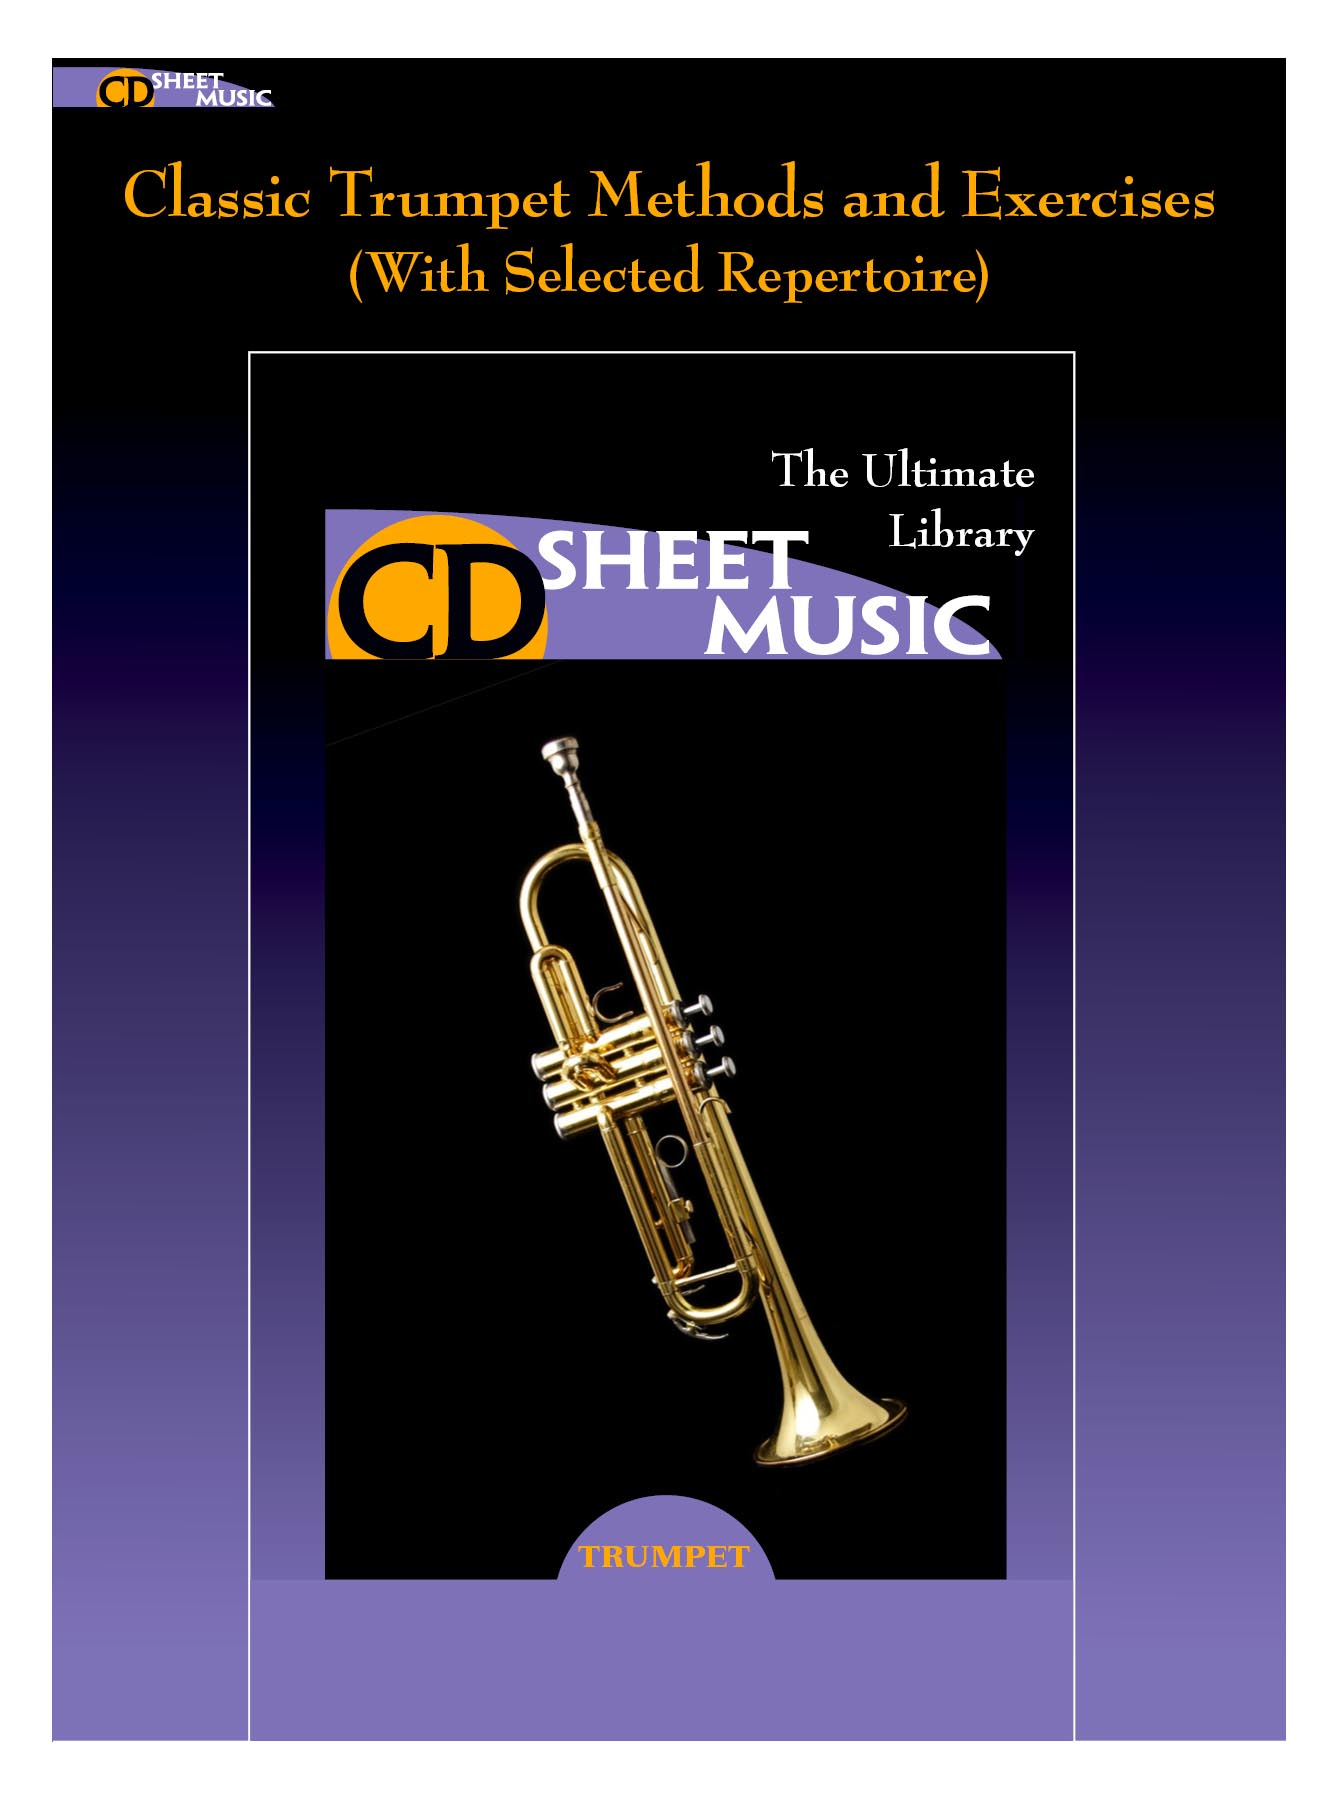 Classic Trumpet Methods and Exercises With Selected Repertiore